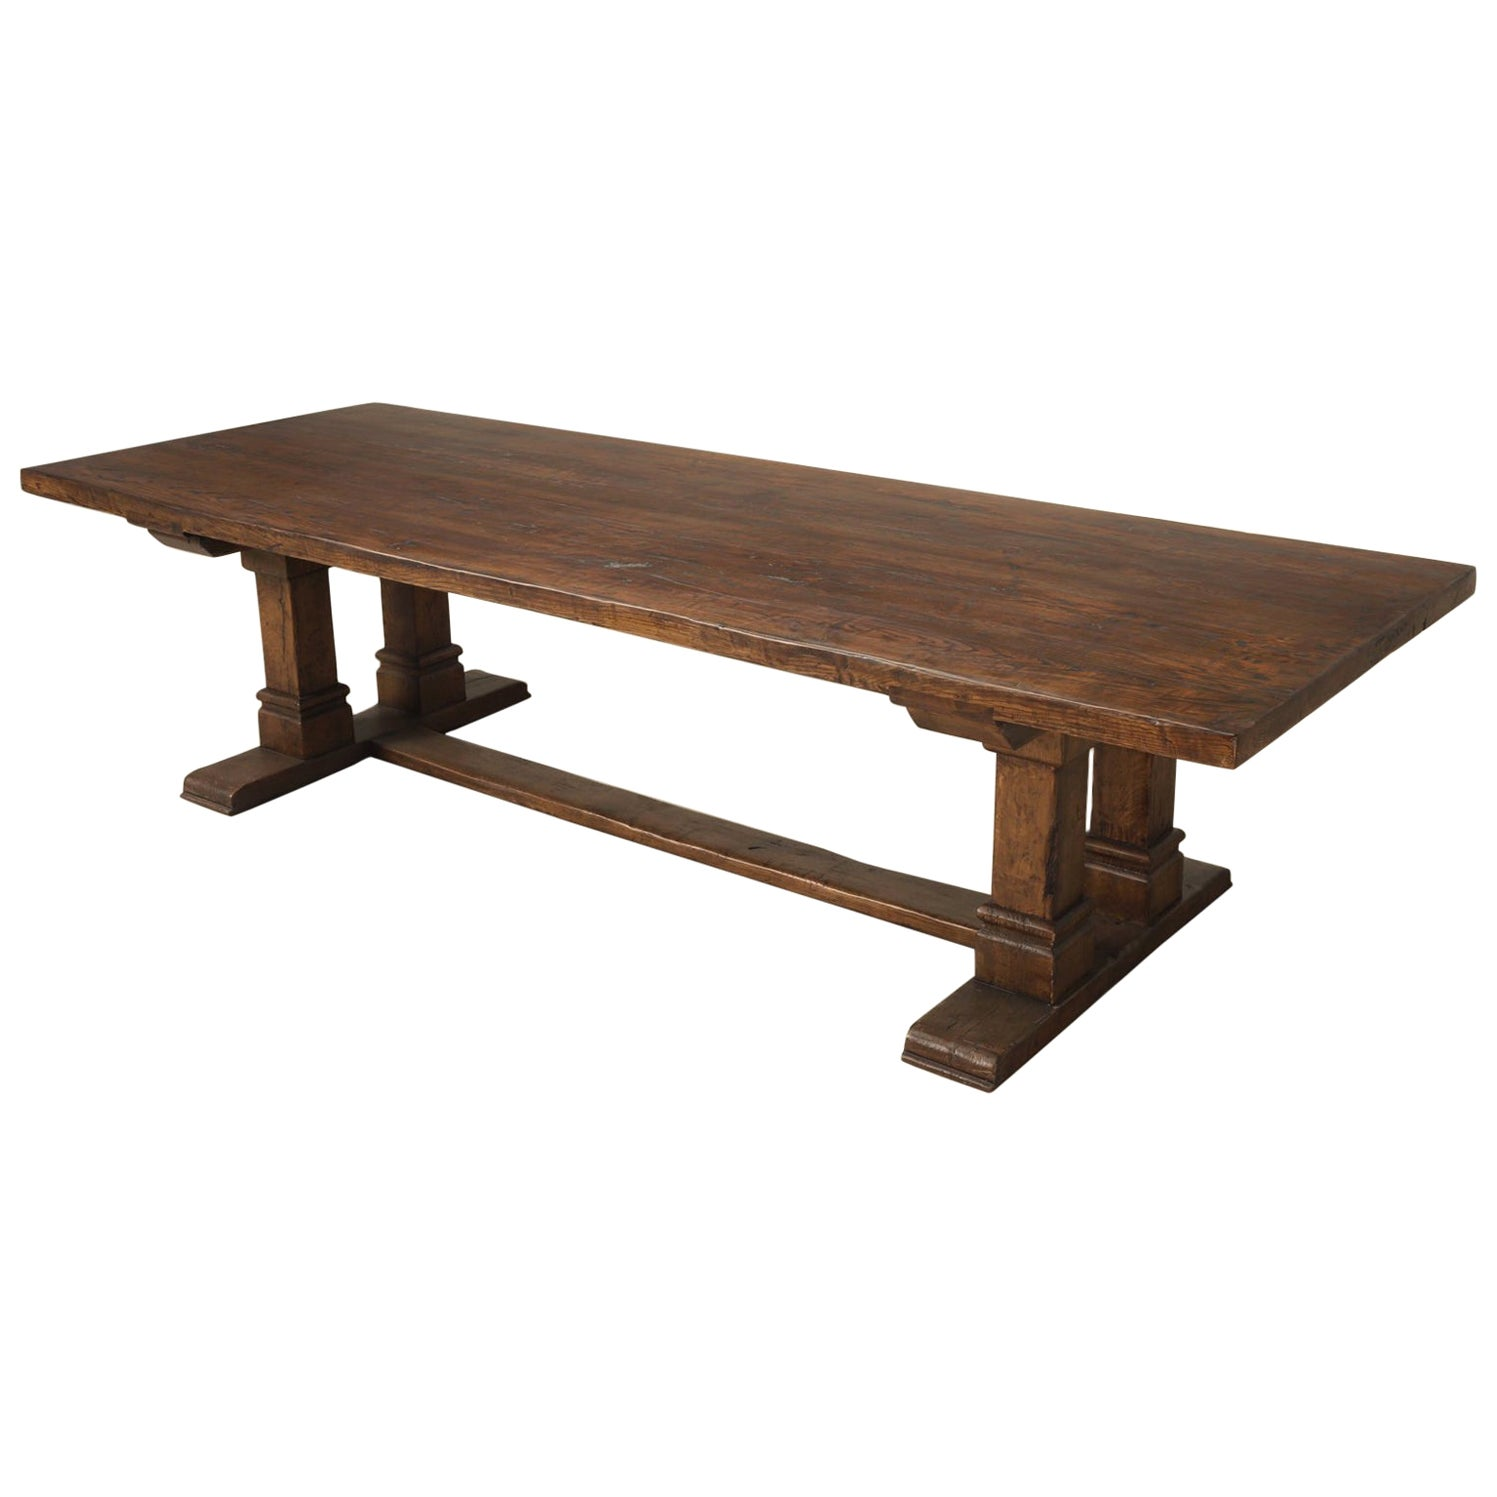 Farmhouse Trestle Dining Table in Solid Oak